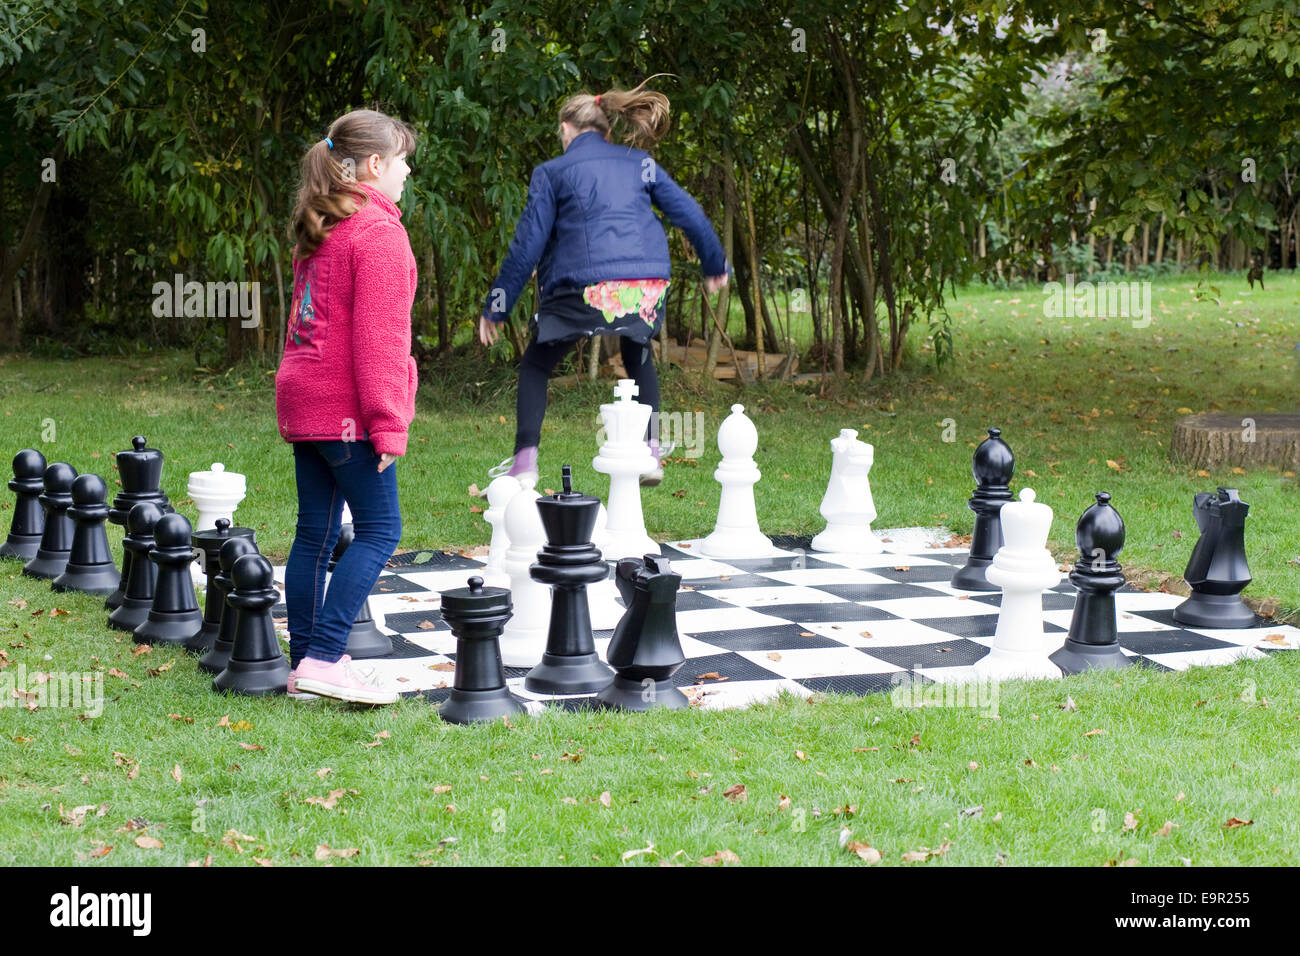 Children Playing On A Giant Garden Chess Set